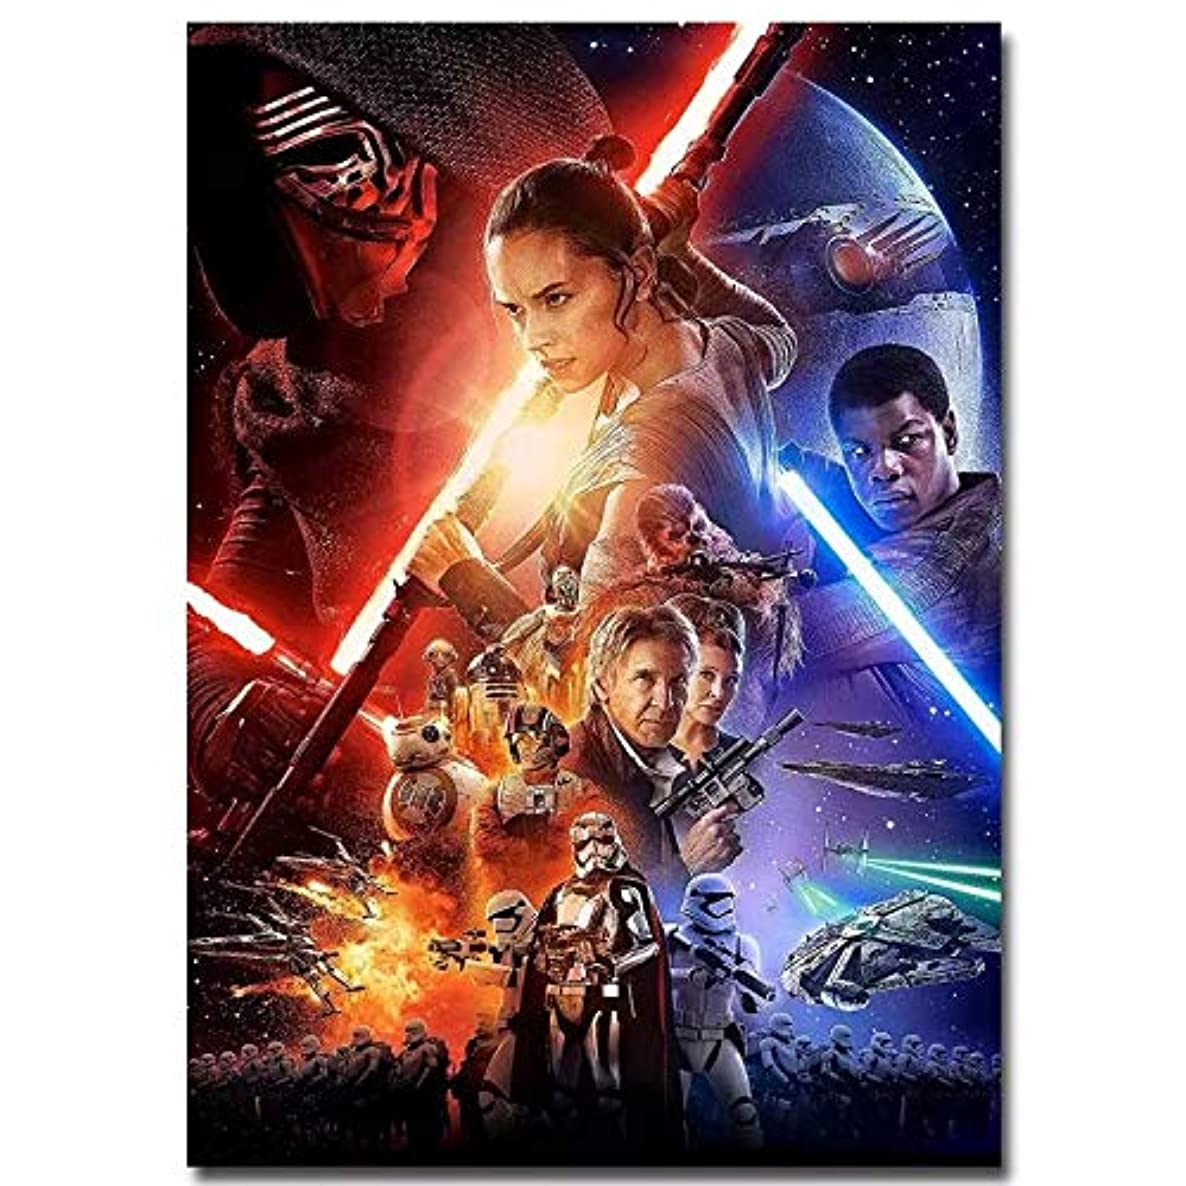 Star Wars Poster Full Drill Diamond Painting 5D DIY Diamond Embroidery Cross Stitch Crystal Rhinestone Art Craft Movie Pictures Mosaic Painting Home Wall Decoration (30X40CM)